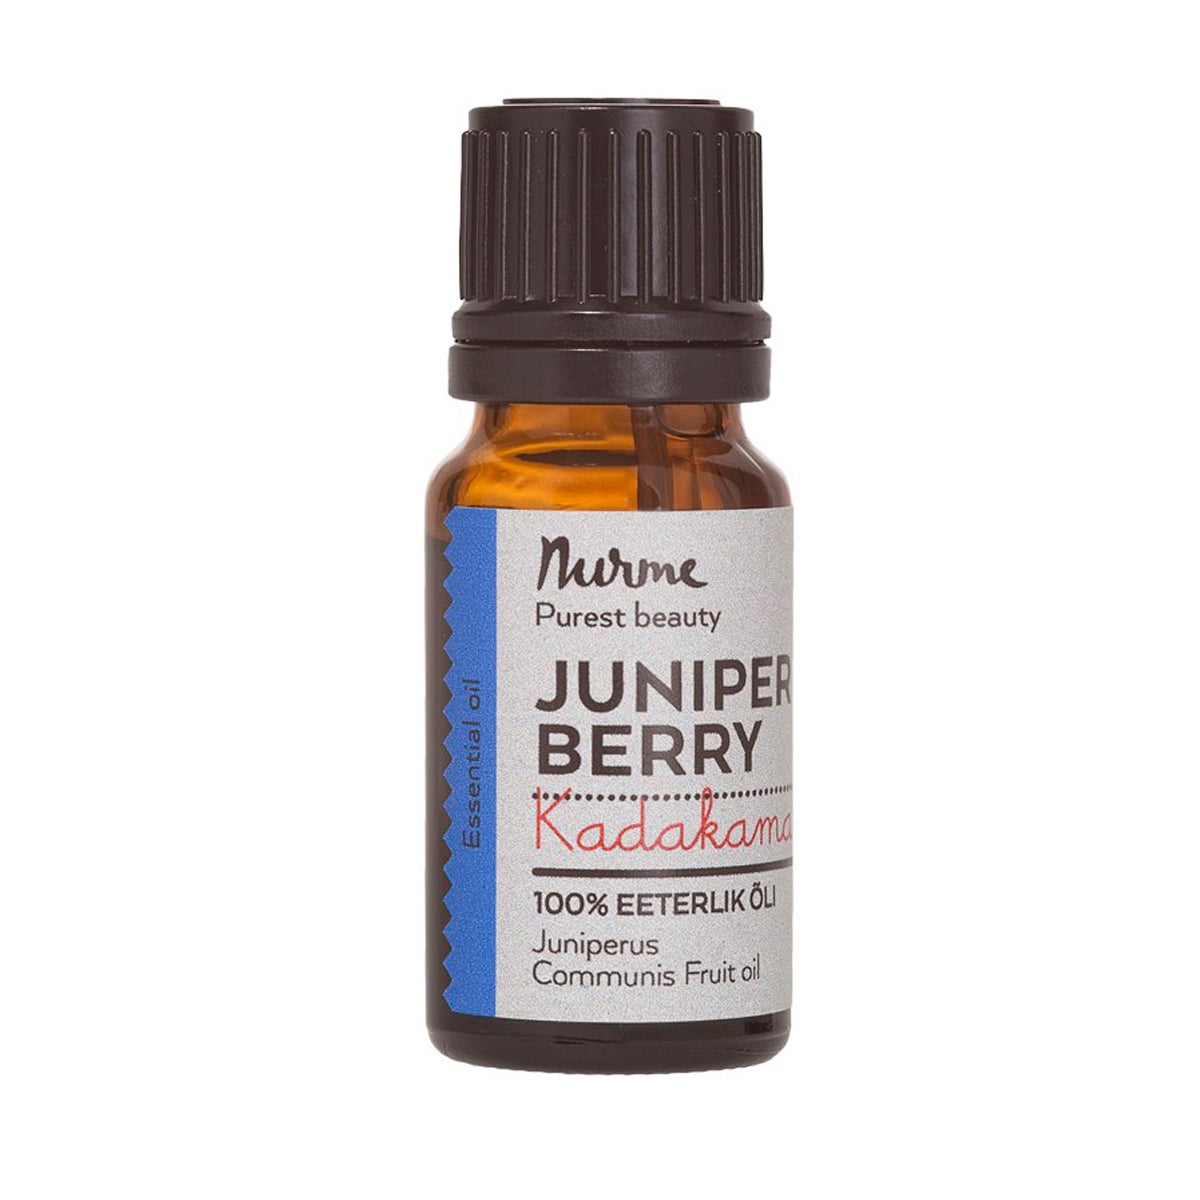 Nurme Juniper Berry Essential Oil